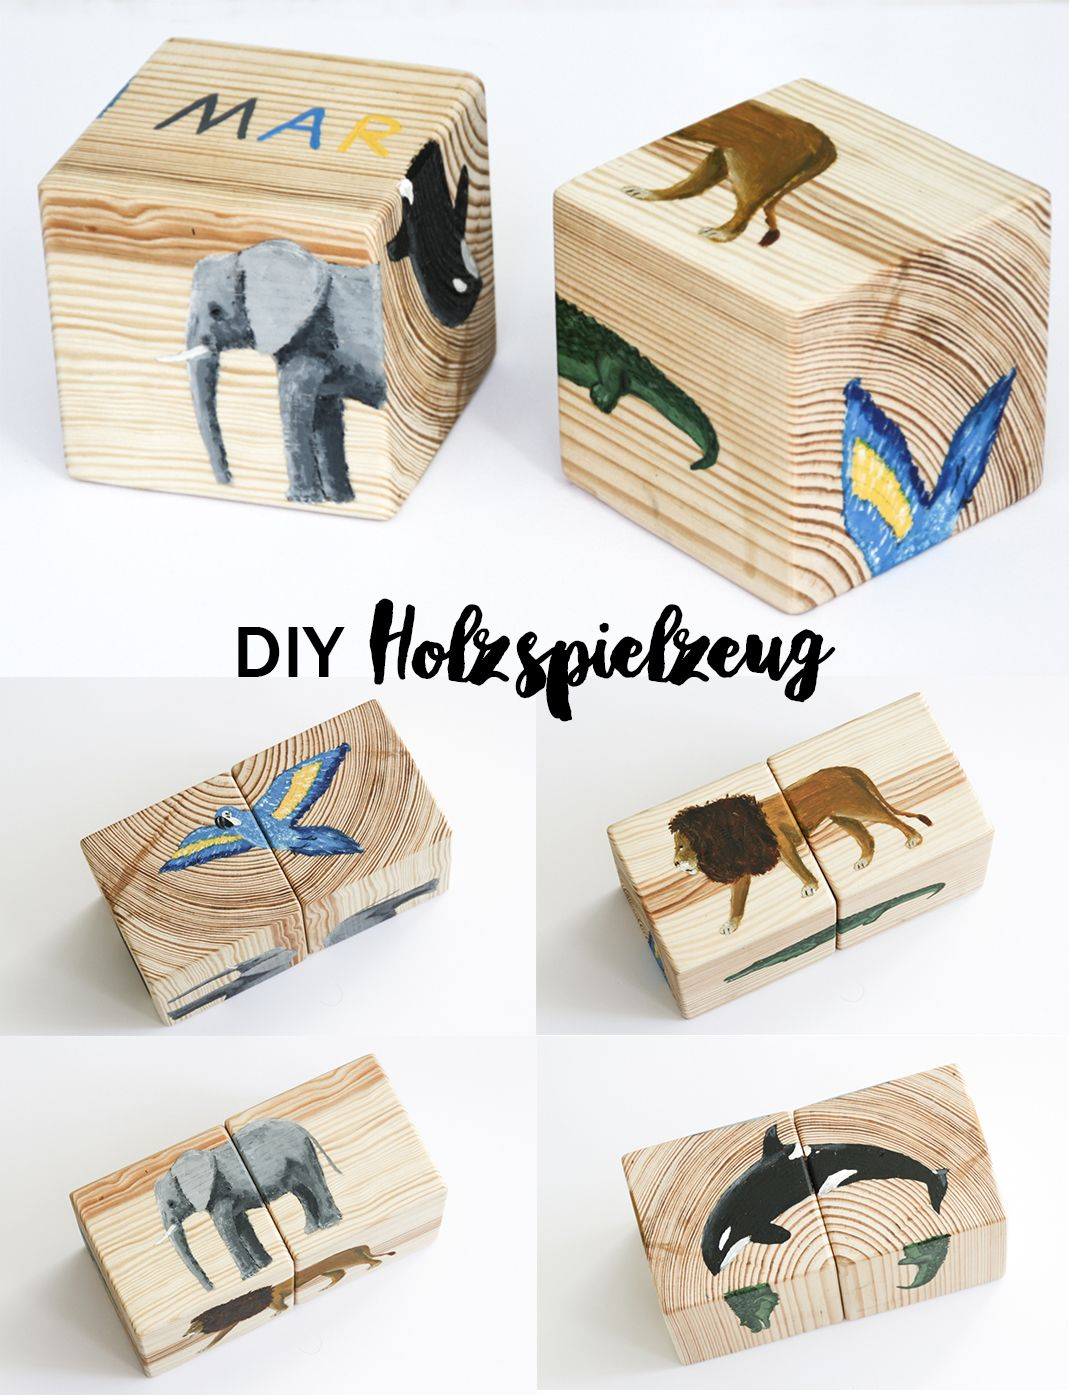 diy holzspielzeug selbstgemacht schereleimpapier diy upcycling pinterest spielzeug. Black Bedroom Furniture Sets. Home Design Ideas